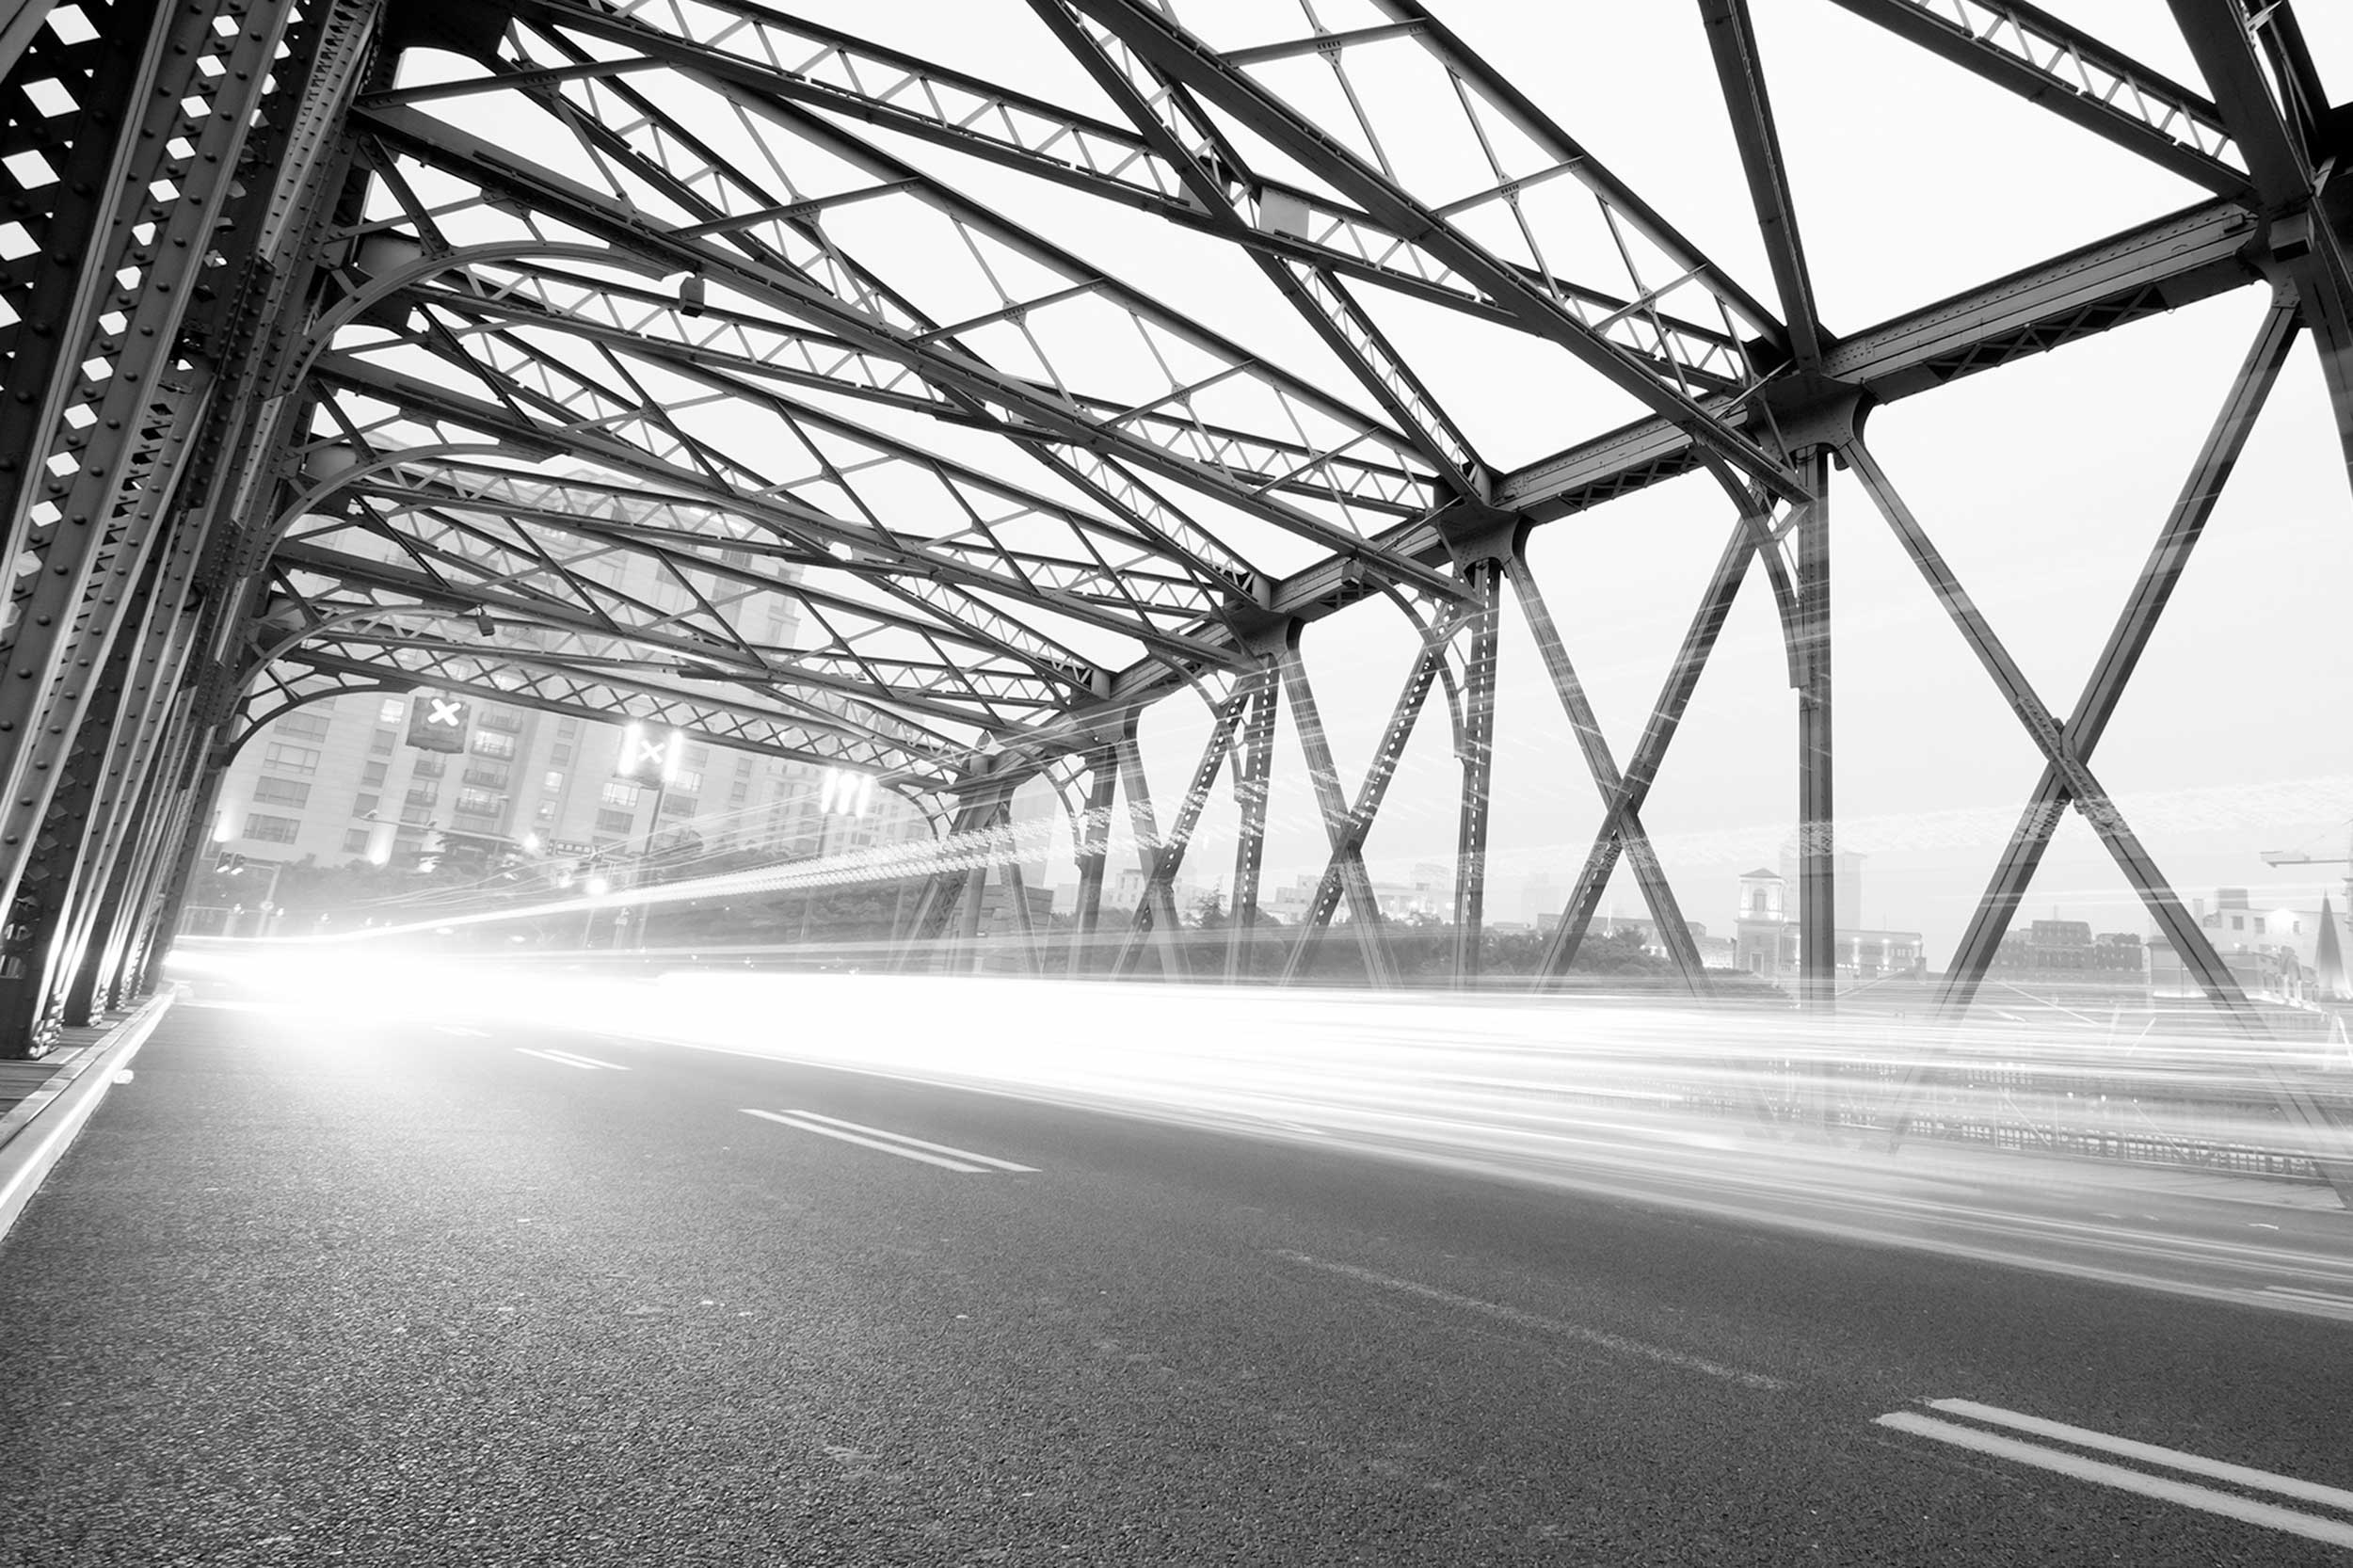 stock image of a traffic whooshing over a bridge